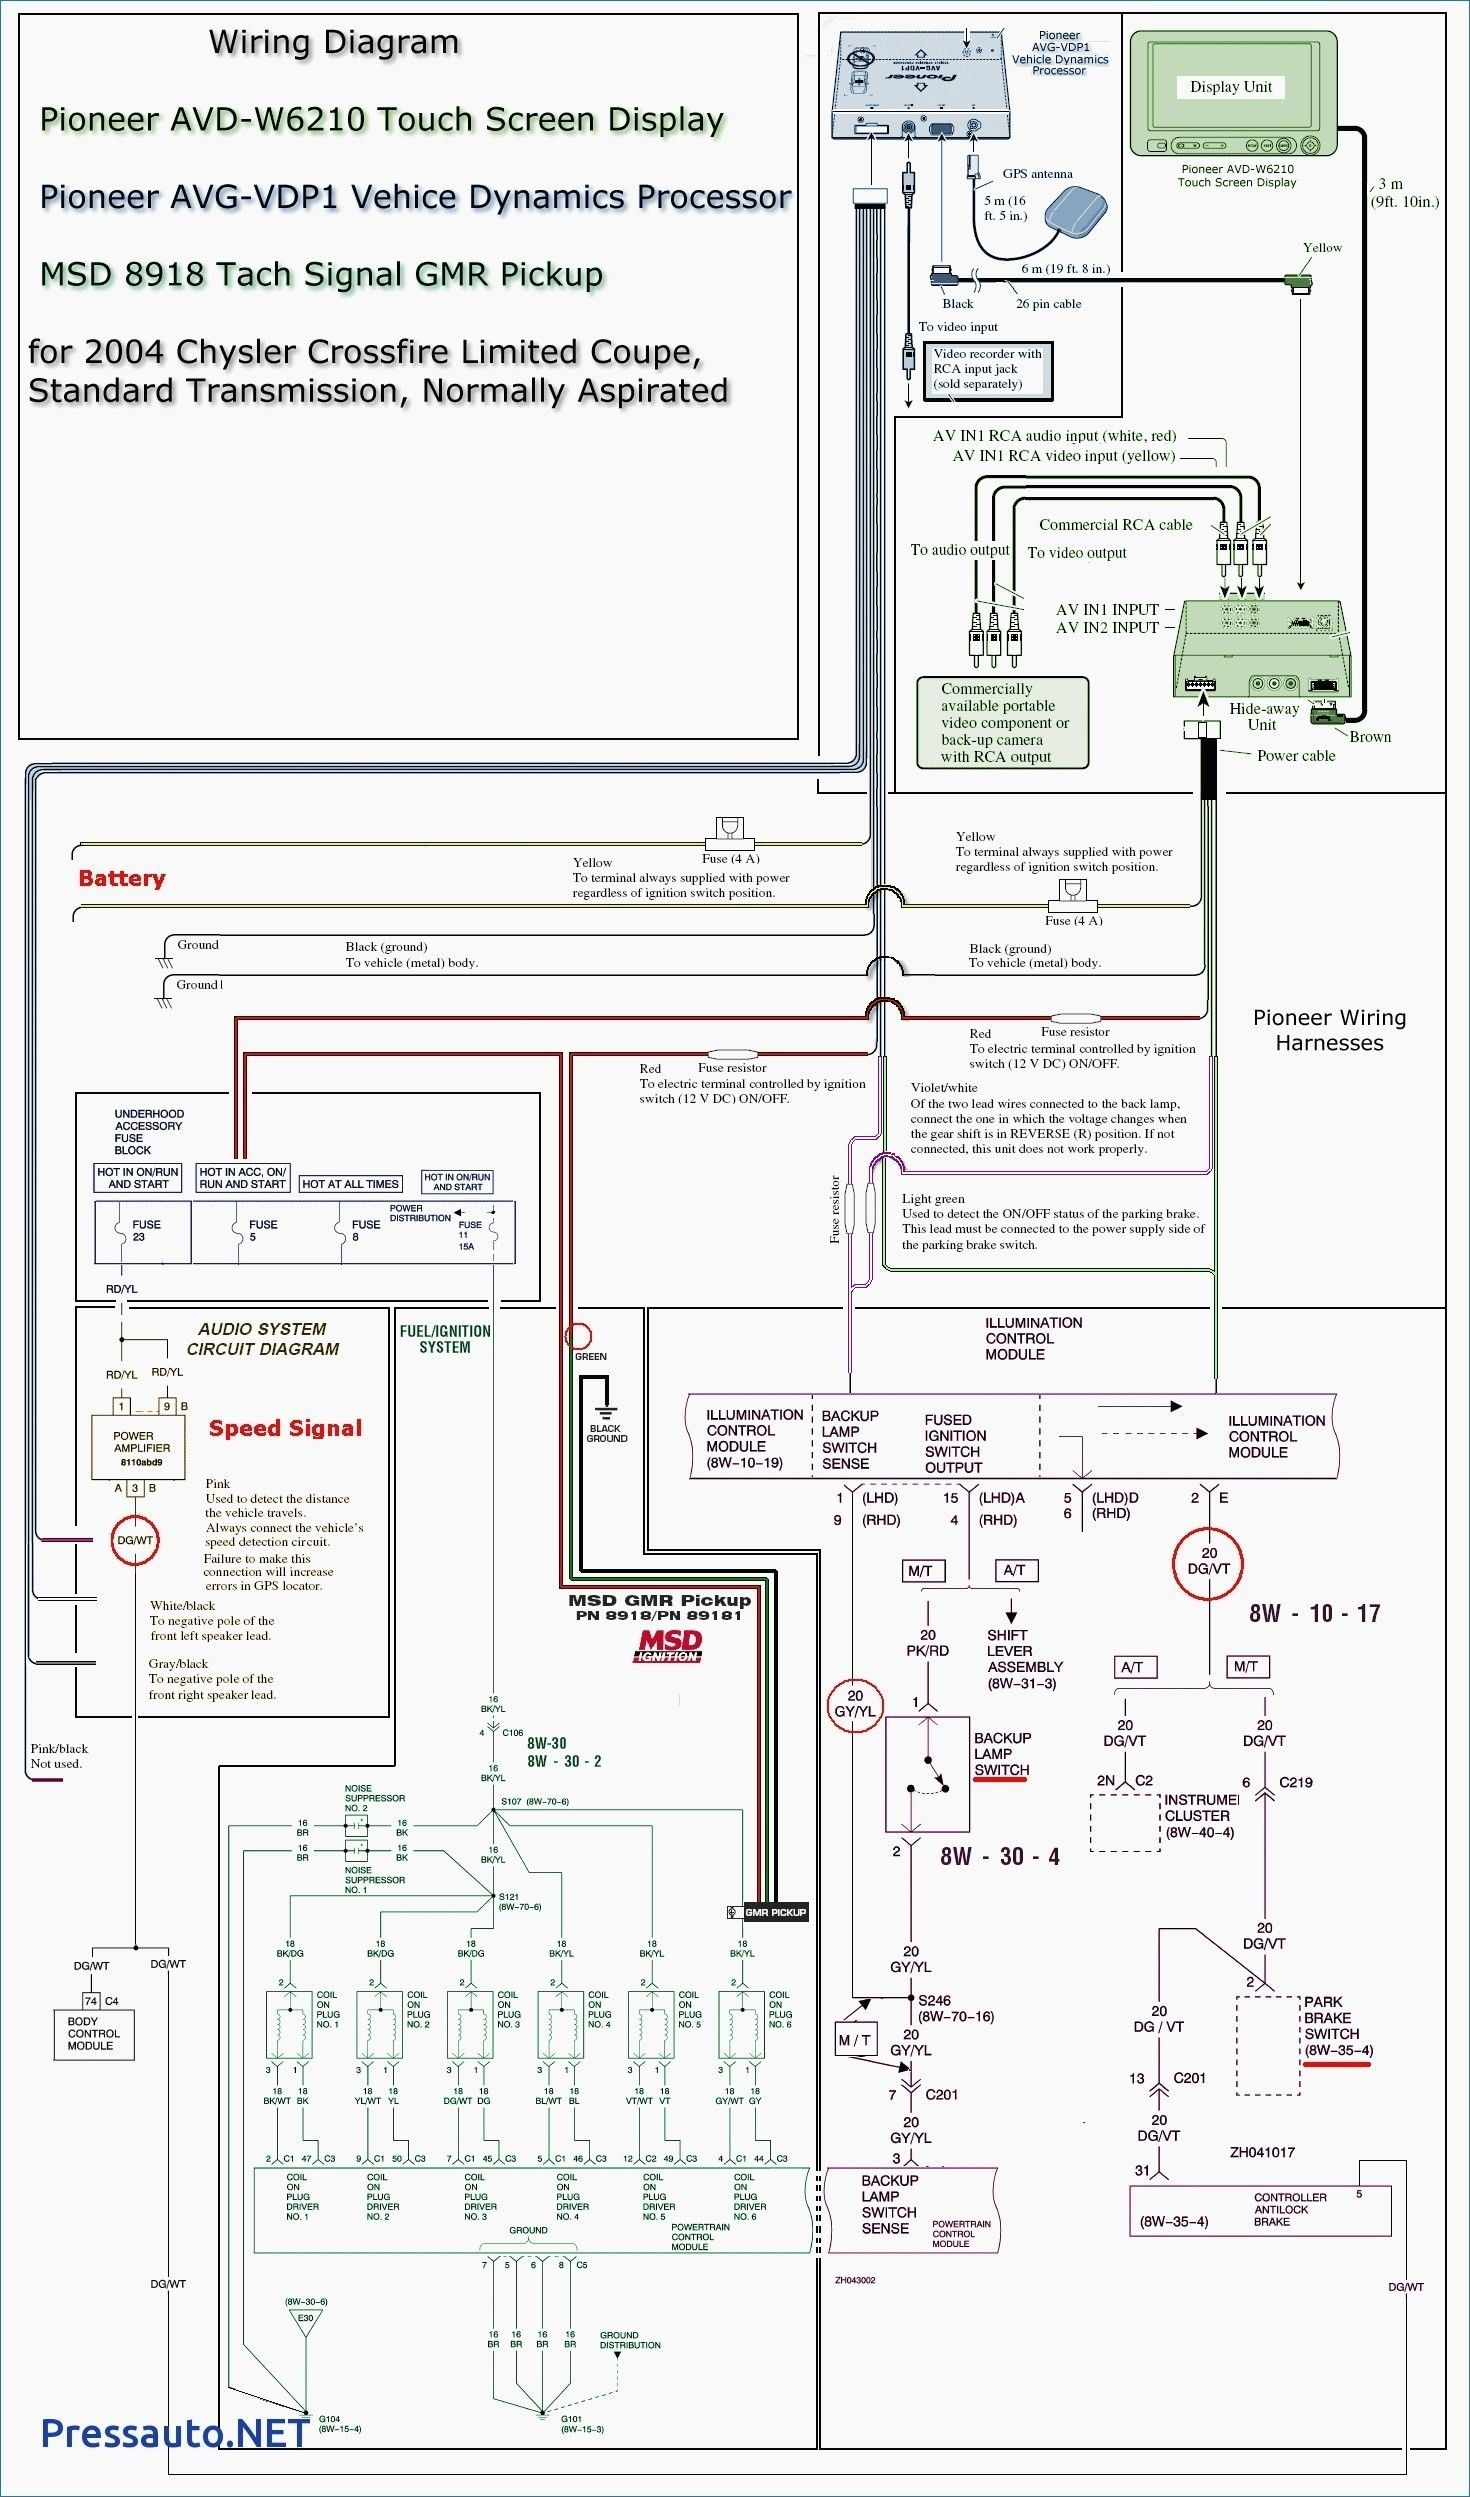 Pioneer Fh-x720bt Wiring Diagram Awesome in 2020 | Diagram, Wire, RadioPinterest